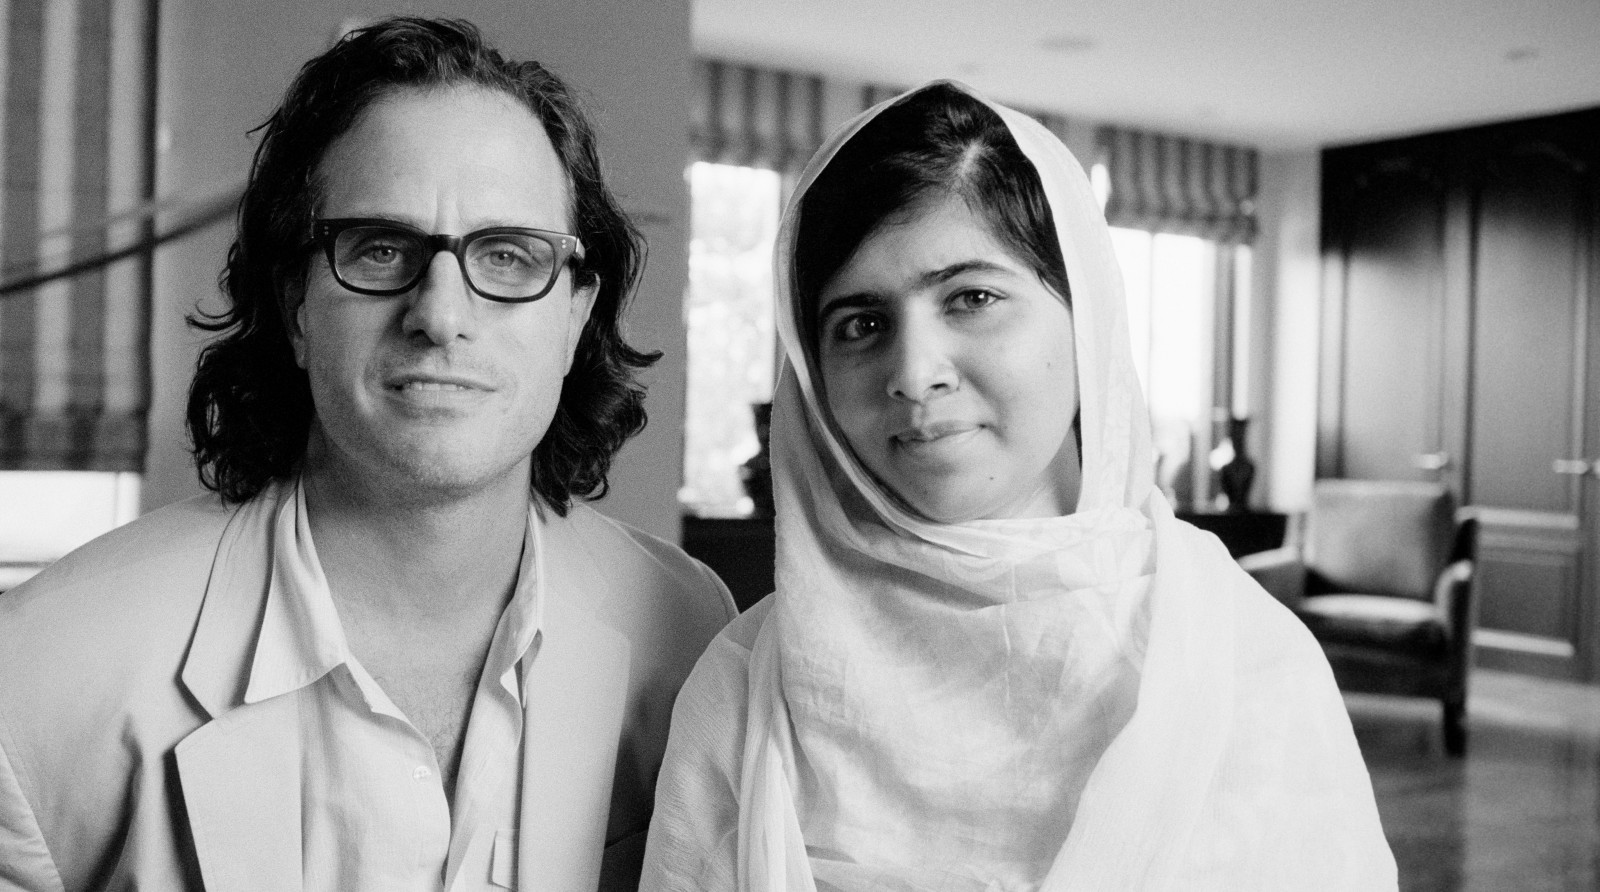 Davis Guggenheim and Malala Yousafzai sat down and talked for several hours. 'He Named Me Malala' is the outcome of their conversation.